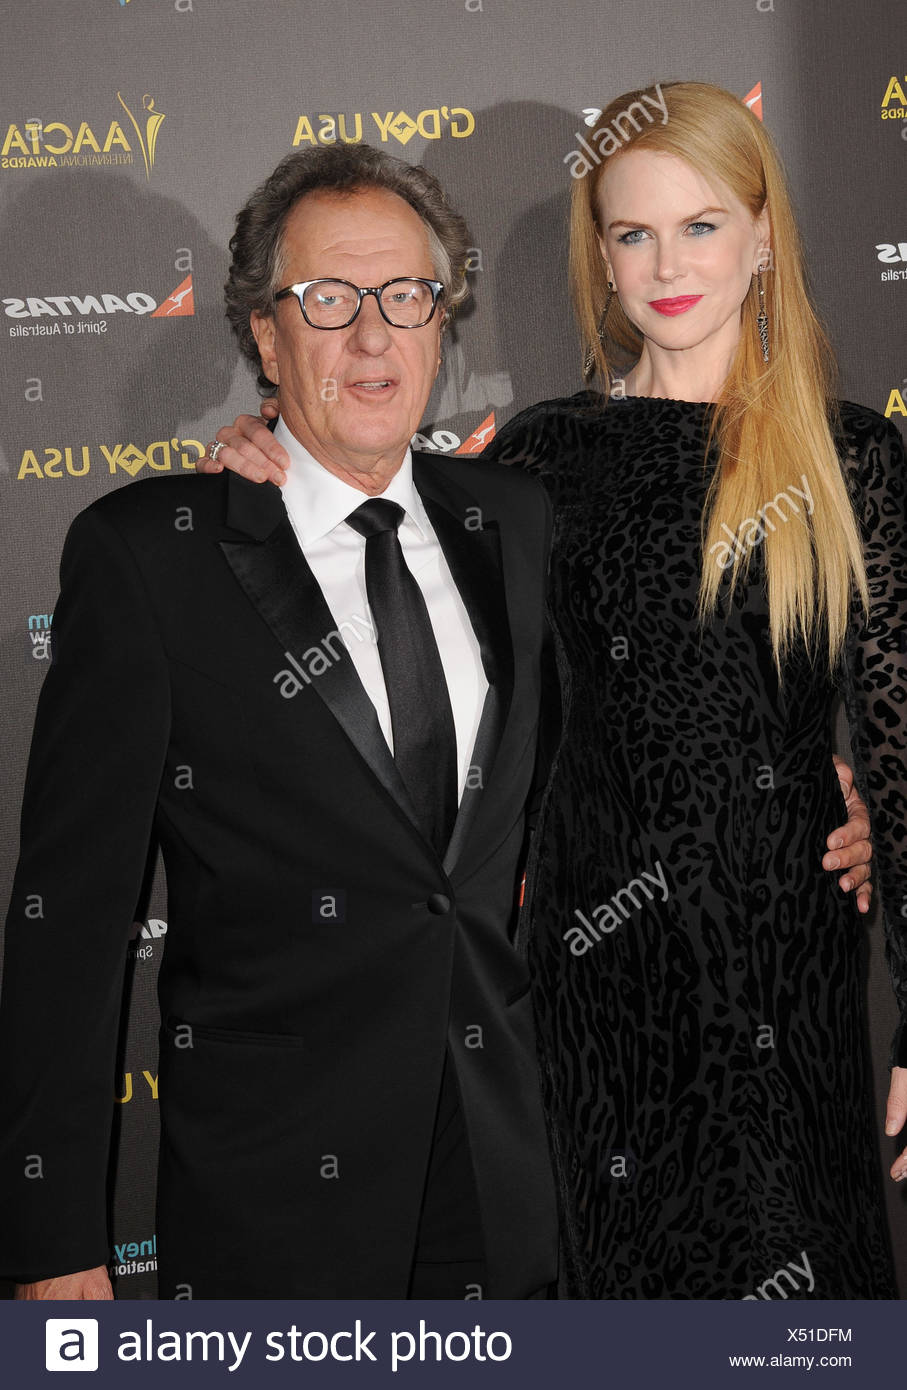 Actors Nicole Kidman (L) and Geoffrey Rush attend the 2015 G'Day USA Gala featuring the AACTA International Awards presented by Qantas at Hollywood Palladium on January 31, 2015 in Los Angeles, California., Additional-Rights-Clearances-NA - Stock Image